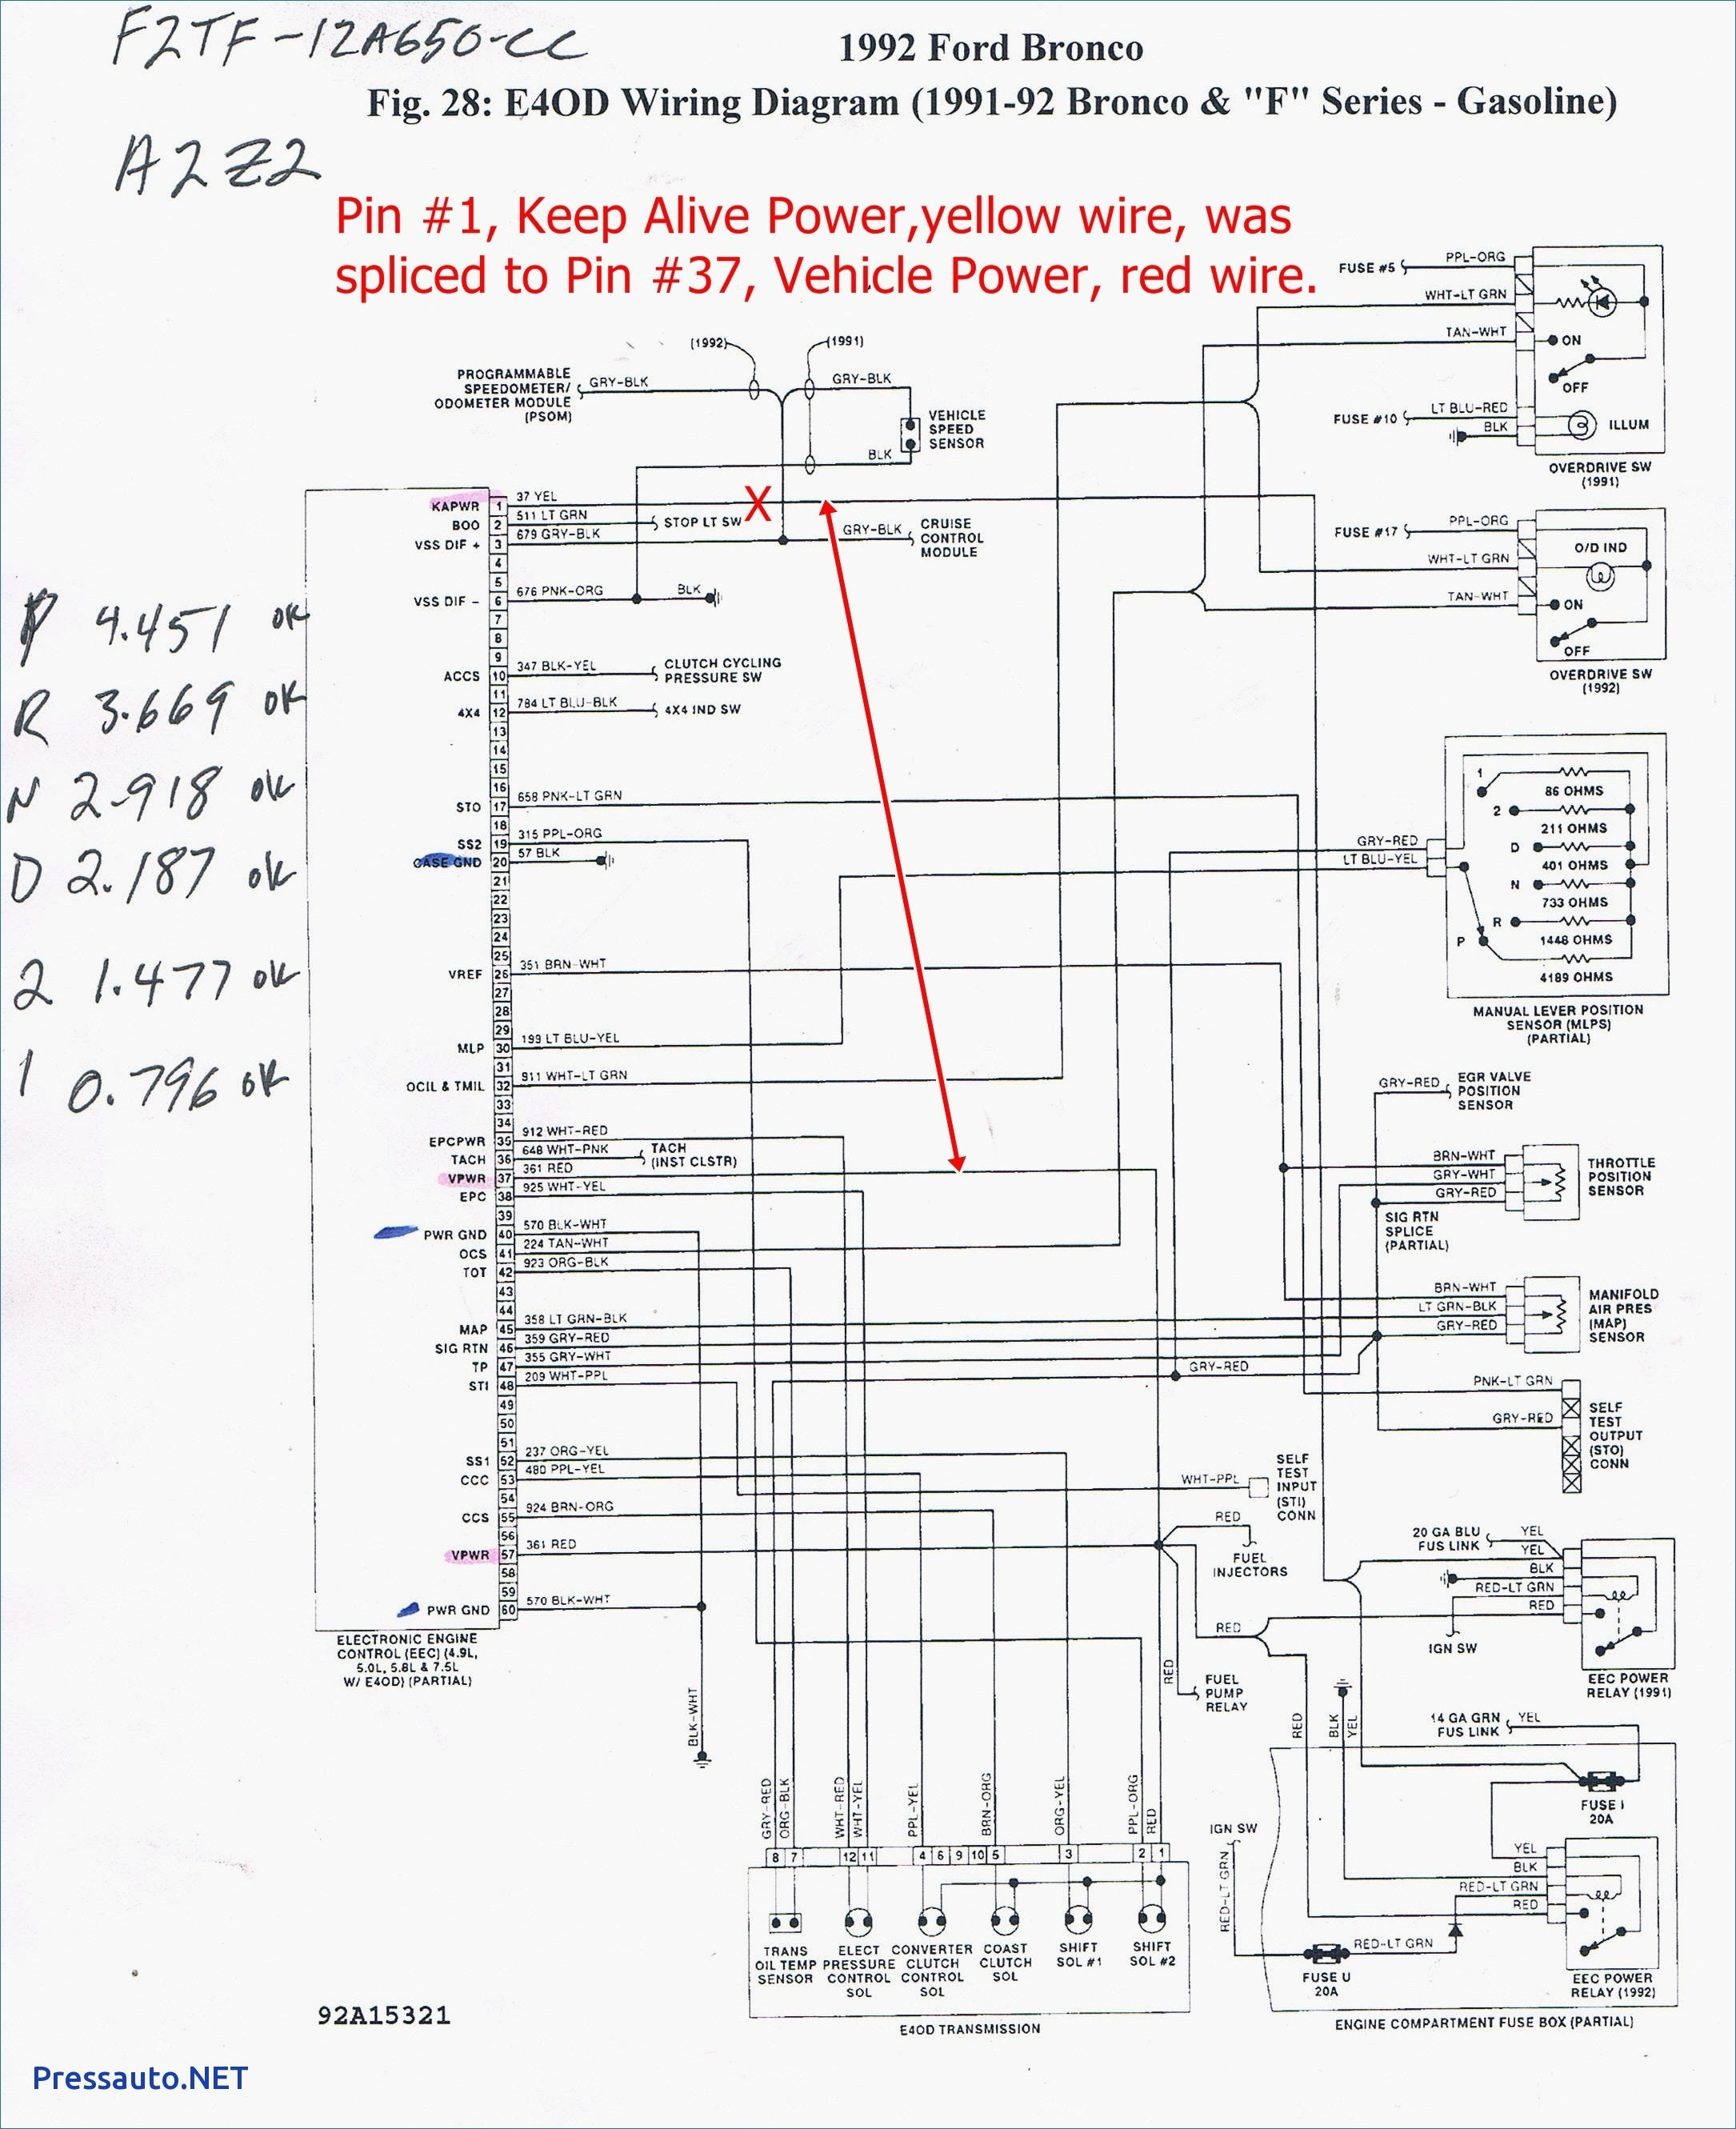 Honda Cb 900 Wiring Diagram On 2001 Accord 12 1982 Cb900 Rh Koloewrty Co